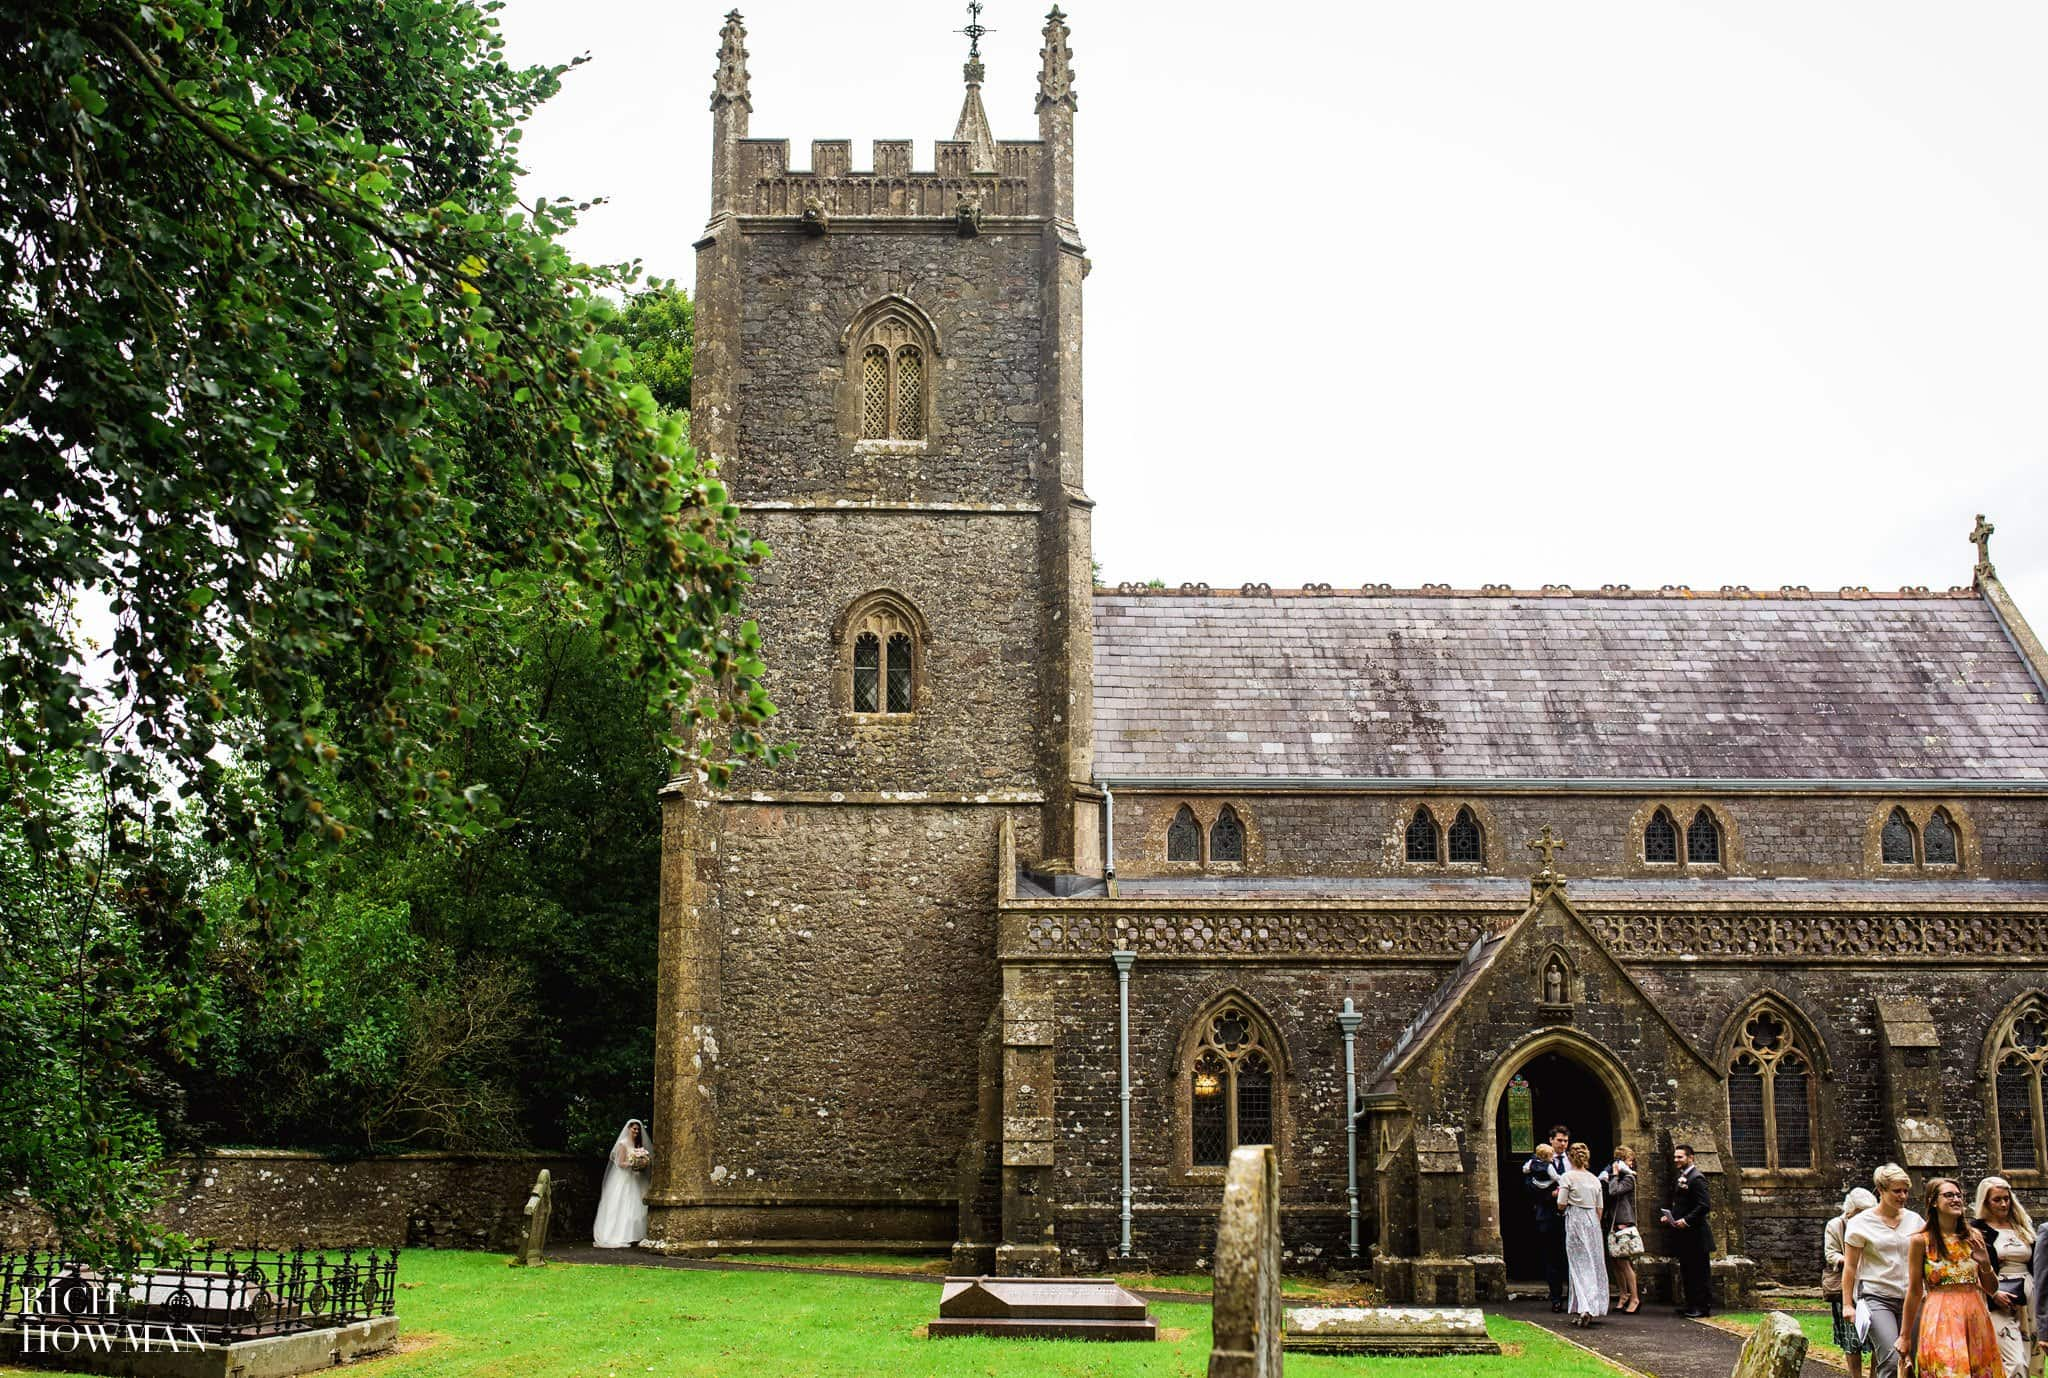 The married couple hide around the corner of the St. James' Church Ashwick to allow their wedding guests to leave and form a confetti line